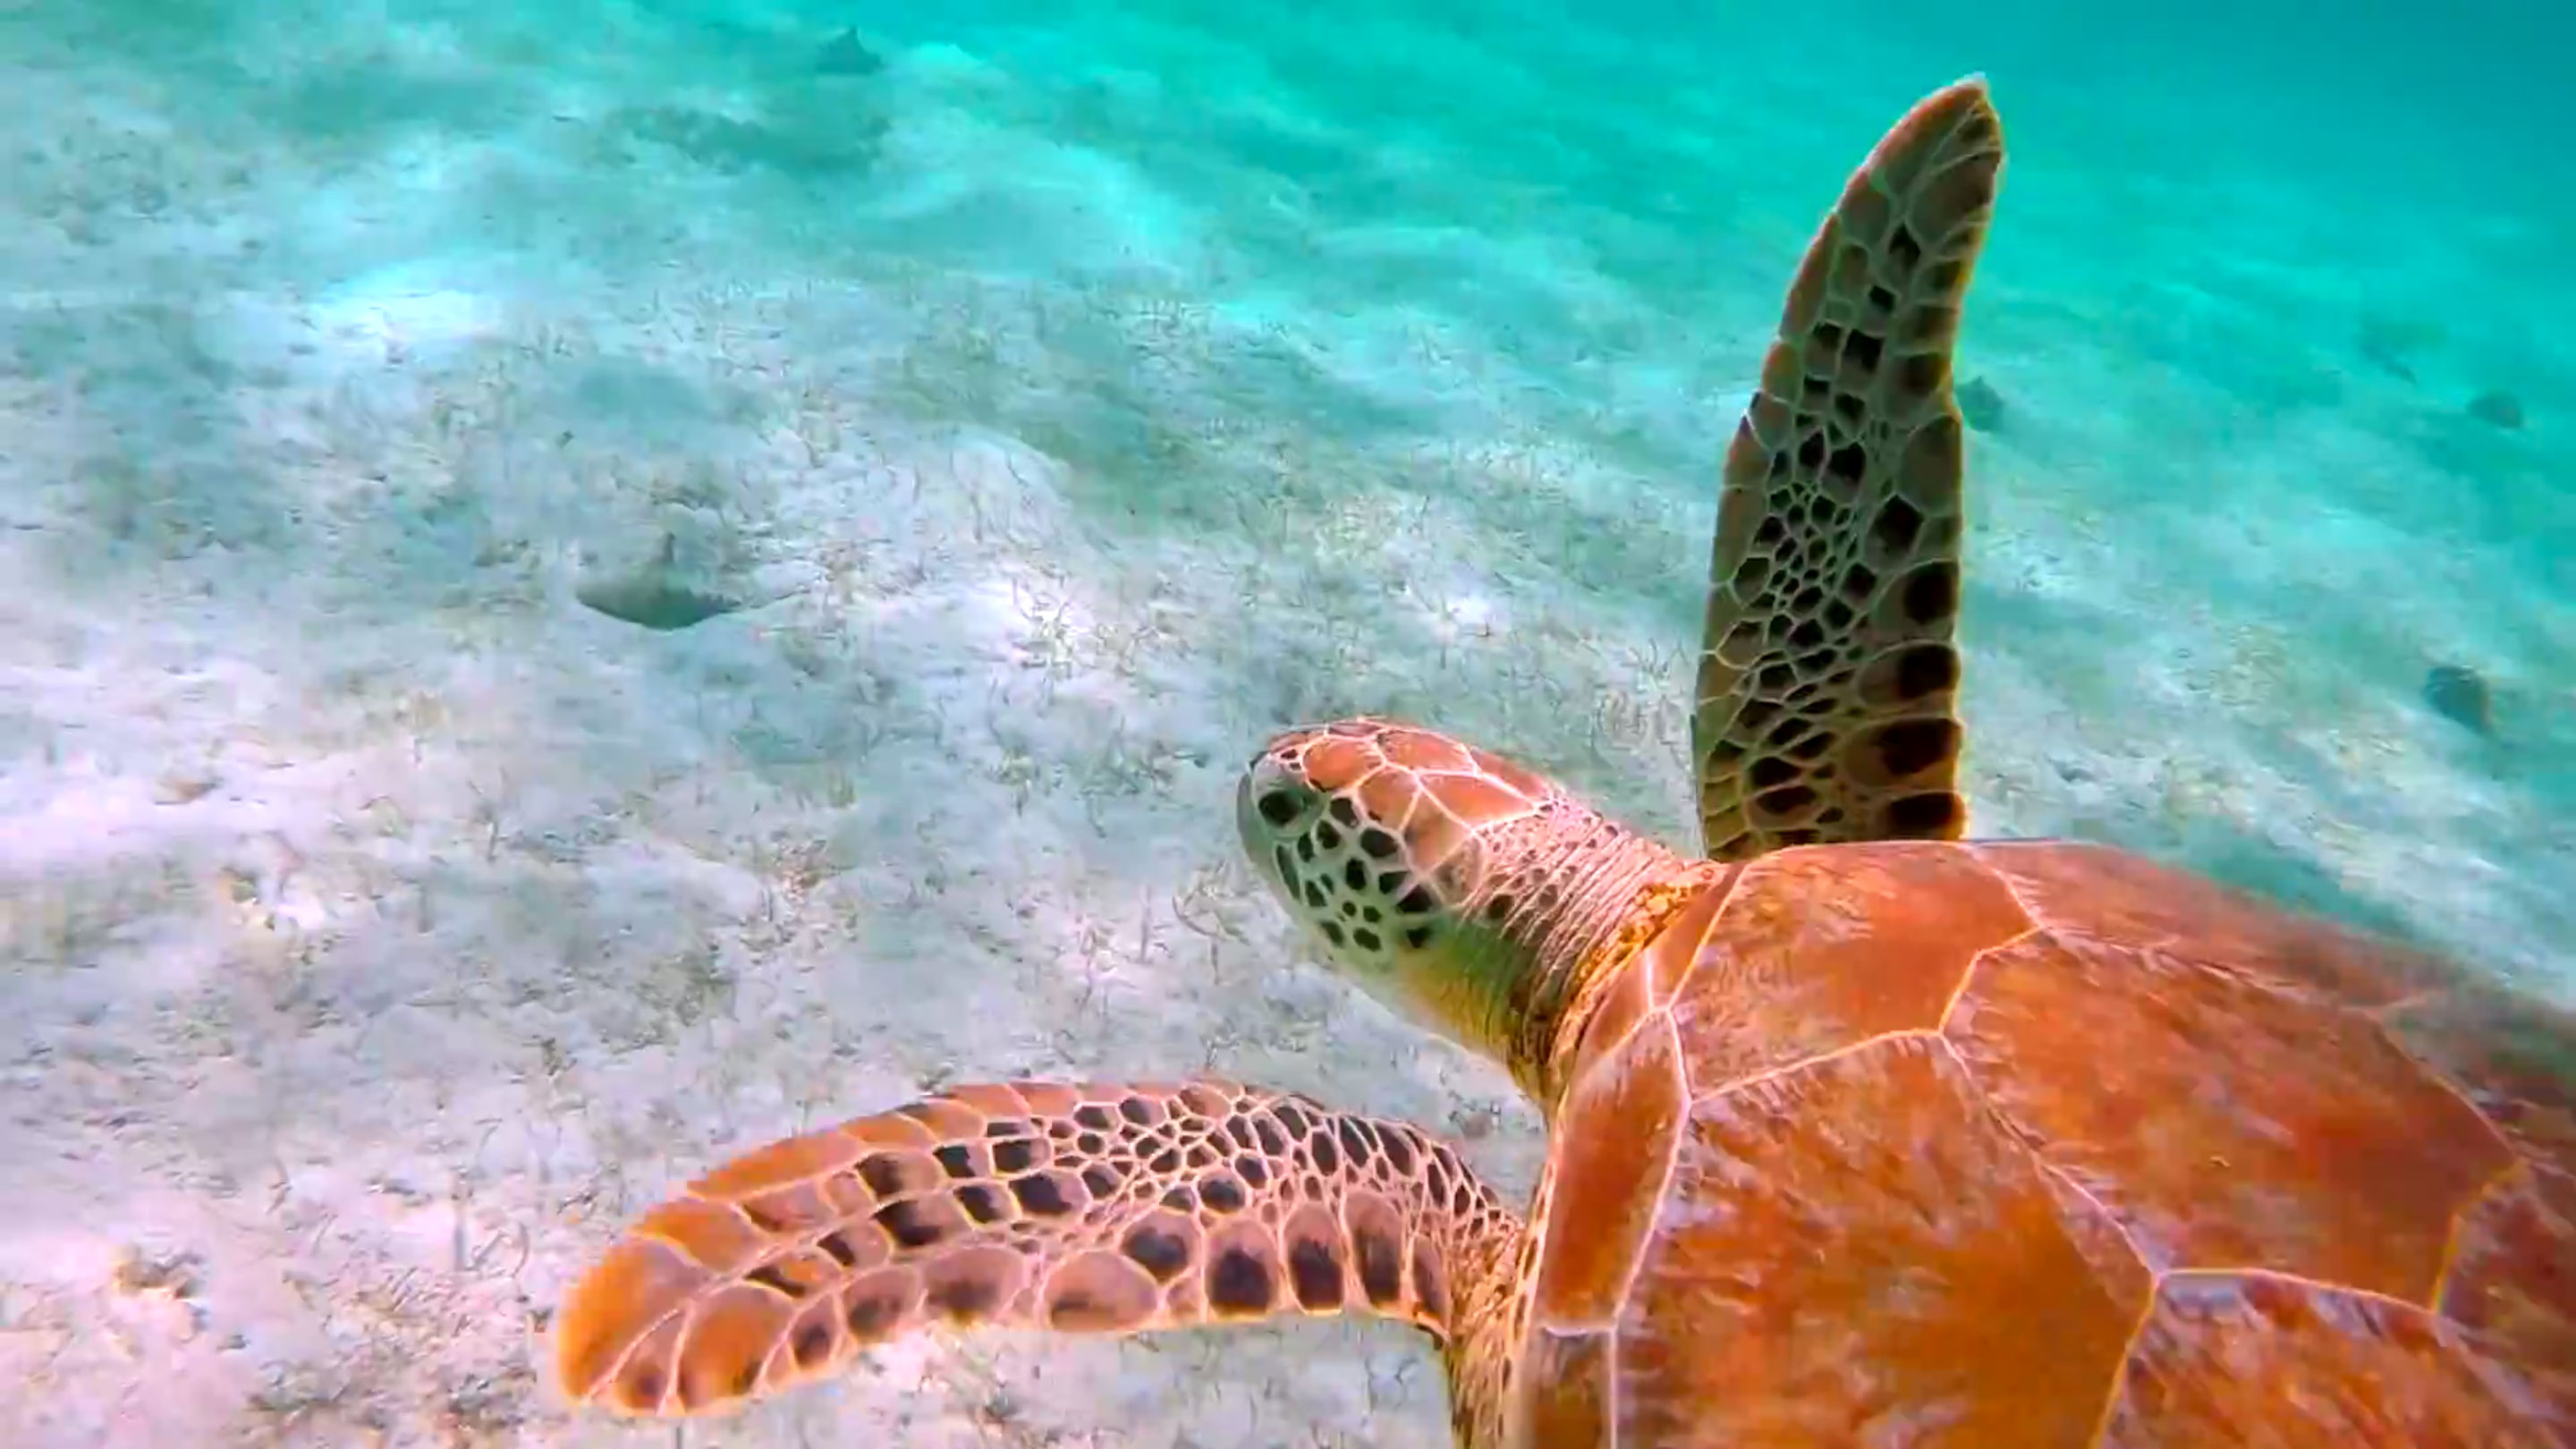 Snorkeling with Turtles Tobago Cays, Grenadines by Patrick Bennett